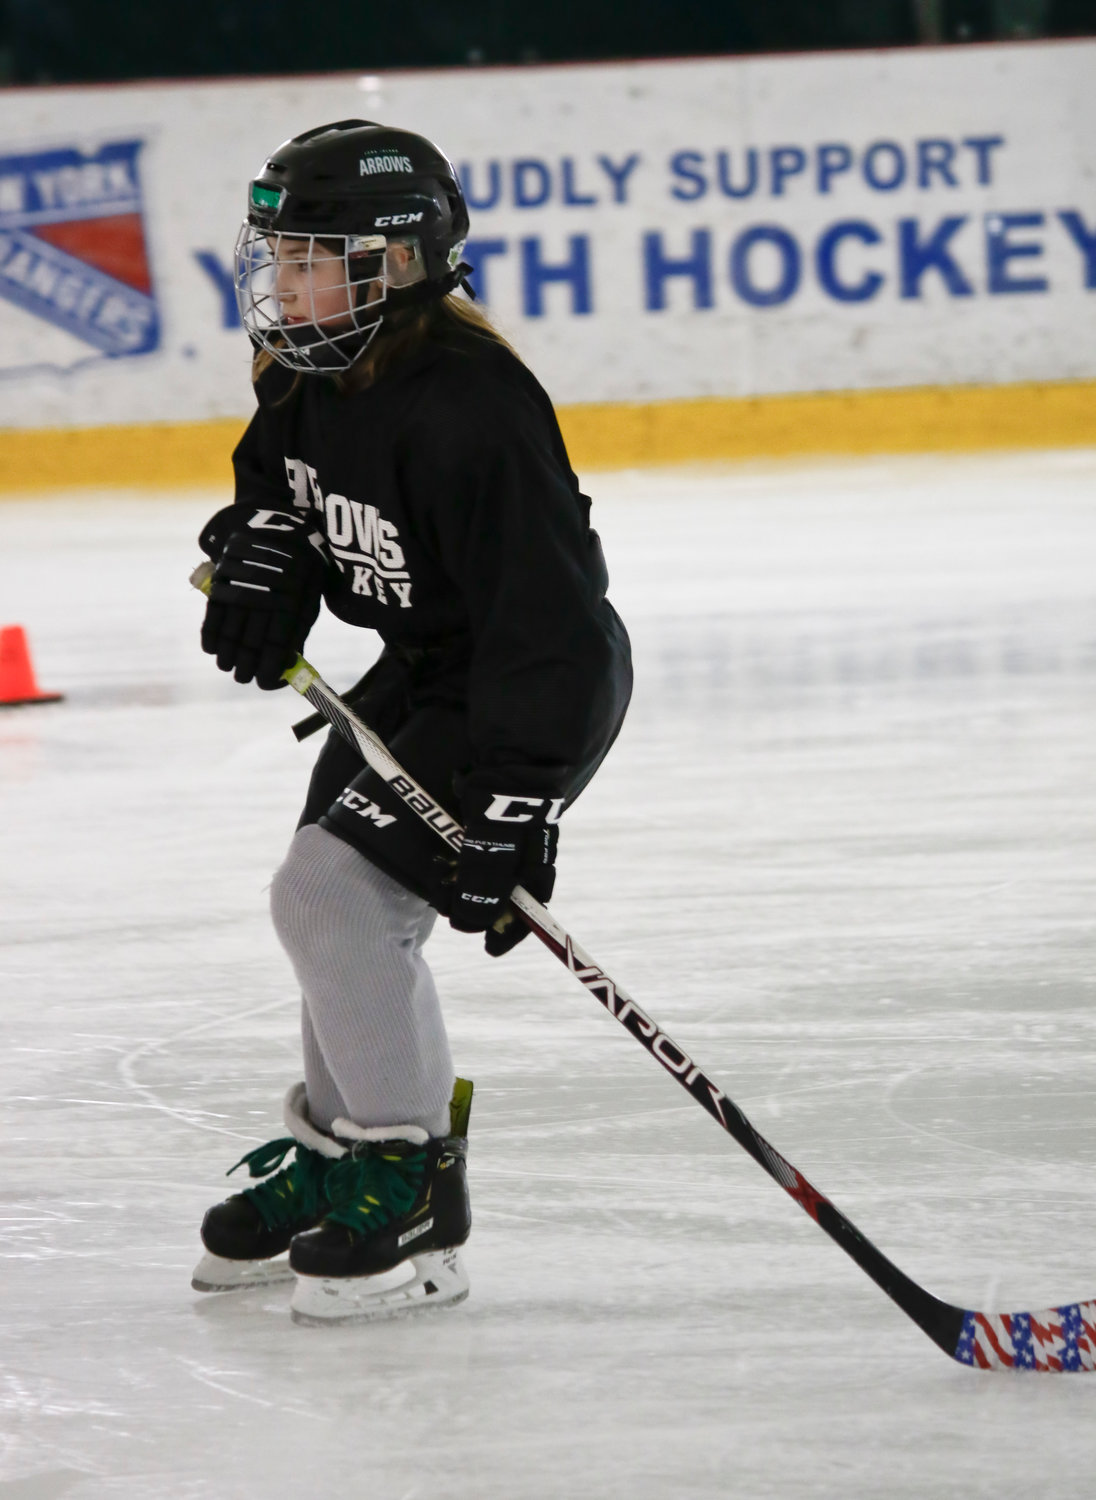 The only female player on the 8U Green team, Emily Stein, did drills during a practice session. The coaches use the American Development Model and cross-ice training to help players reach their full potential.